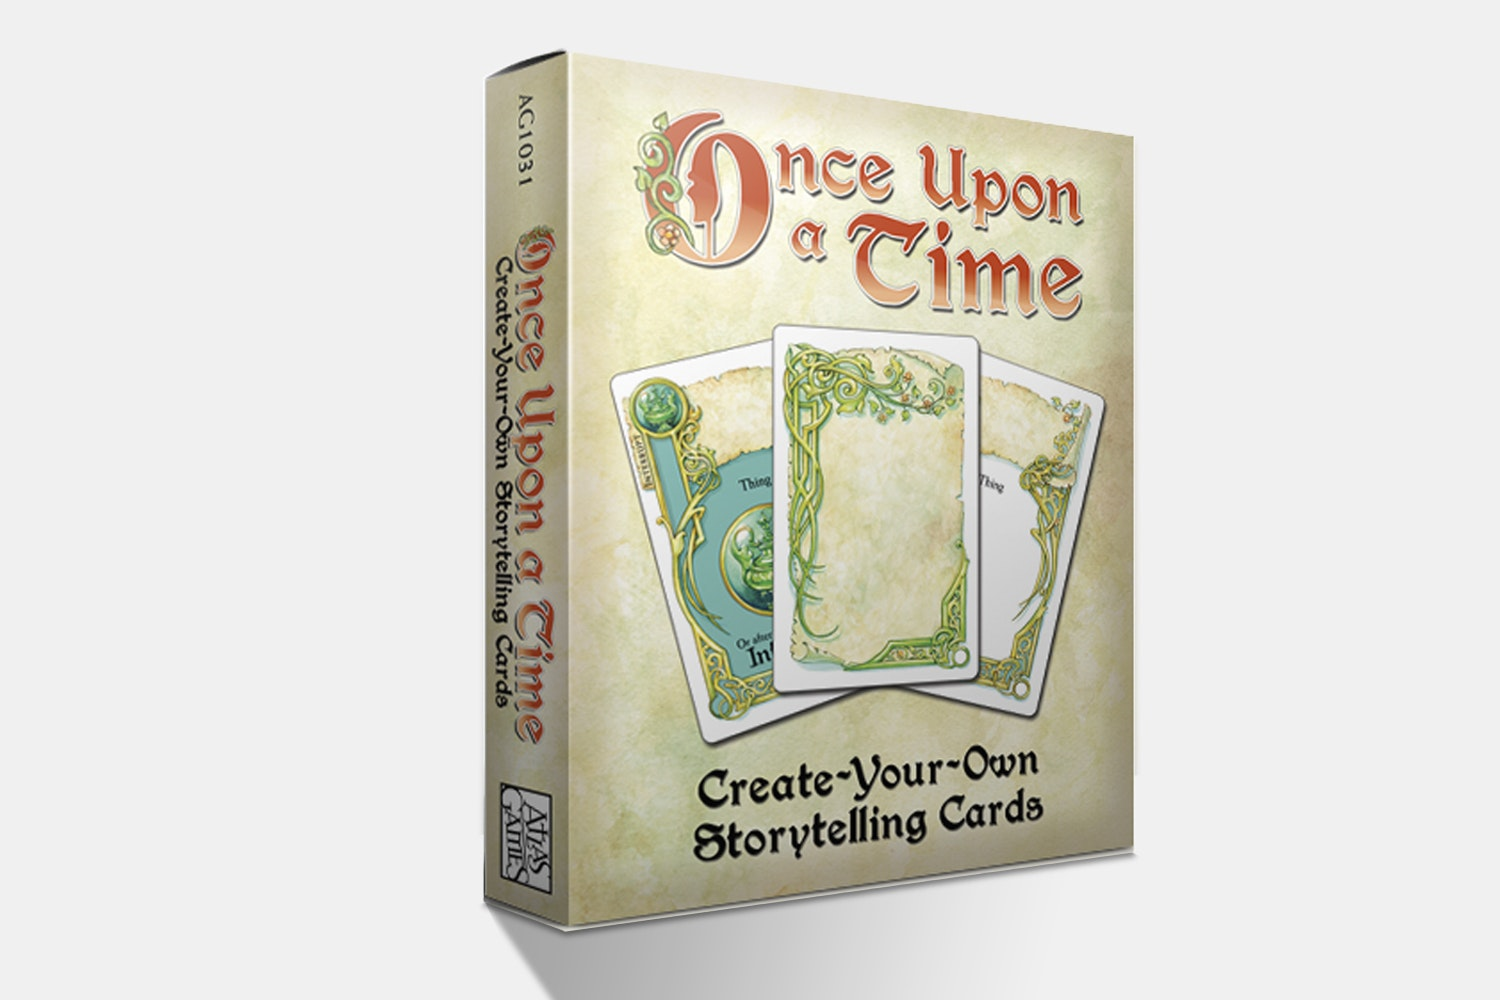 Once Upon a Time (Create Your Own Storytelling Cards)